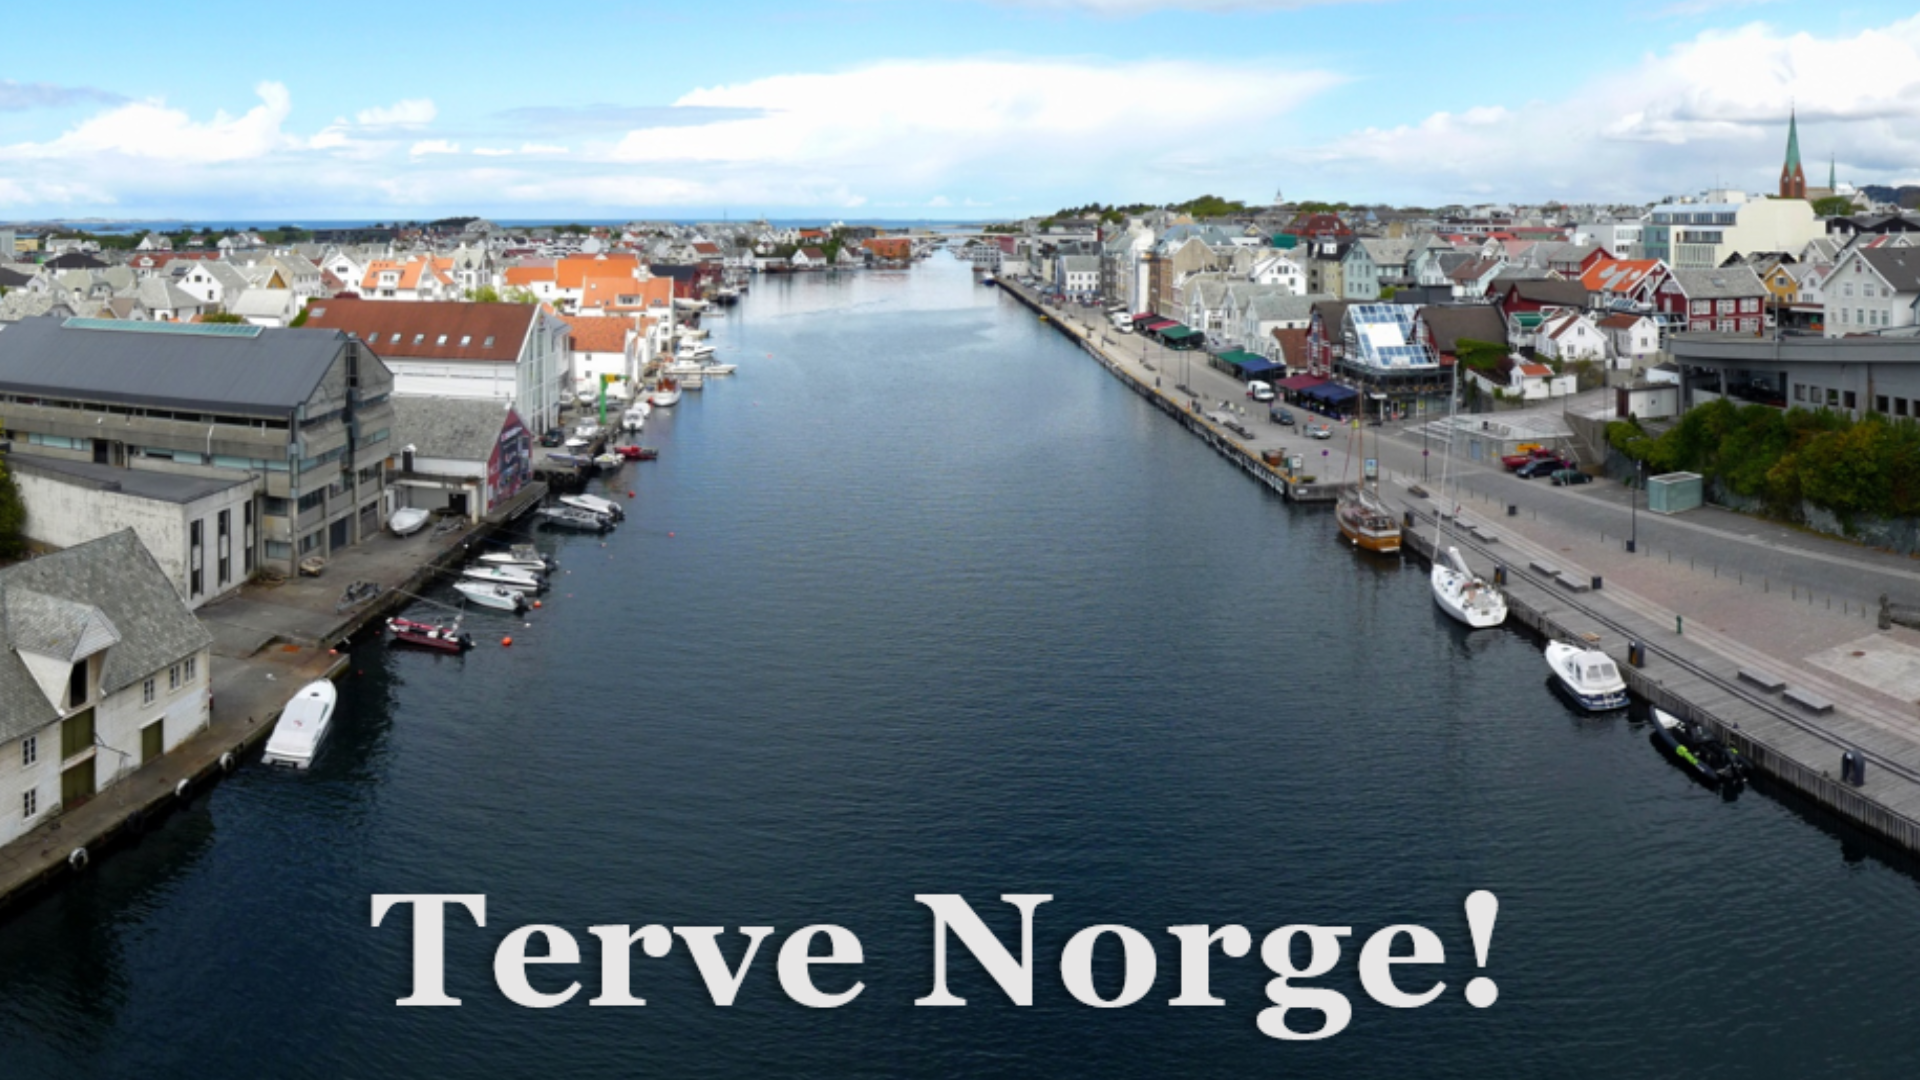 Terve Norge!